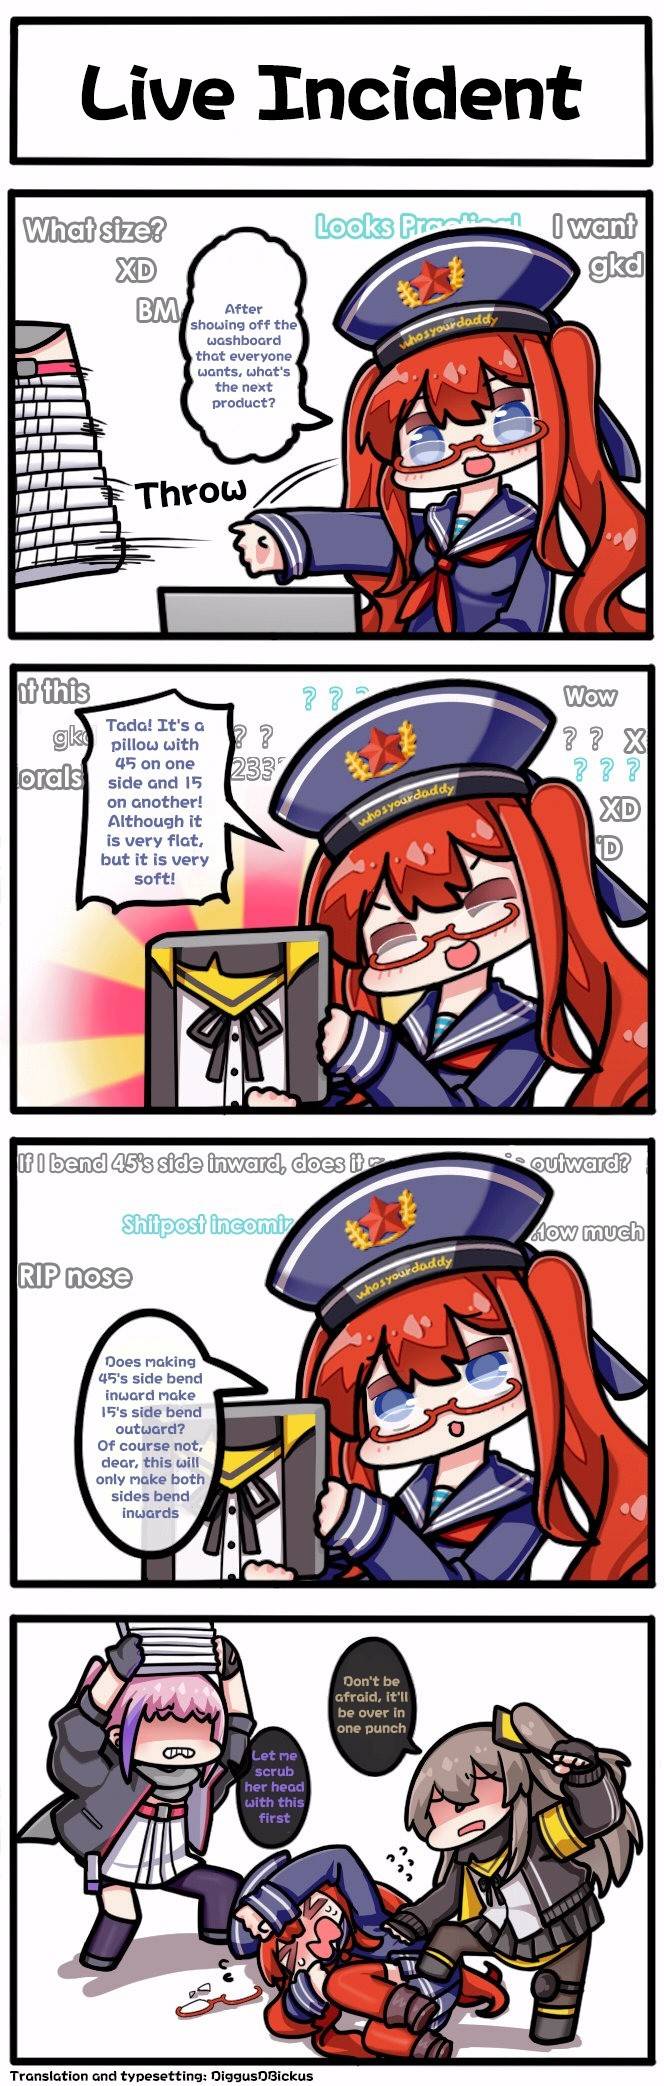 Live Incident. liveincident/ join list: GirlsFrontline (594 subs)Mention Clicks: 118891Msgs Sent: 441637Mention History.. A troubling (yet one dimensional) issue.